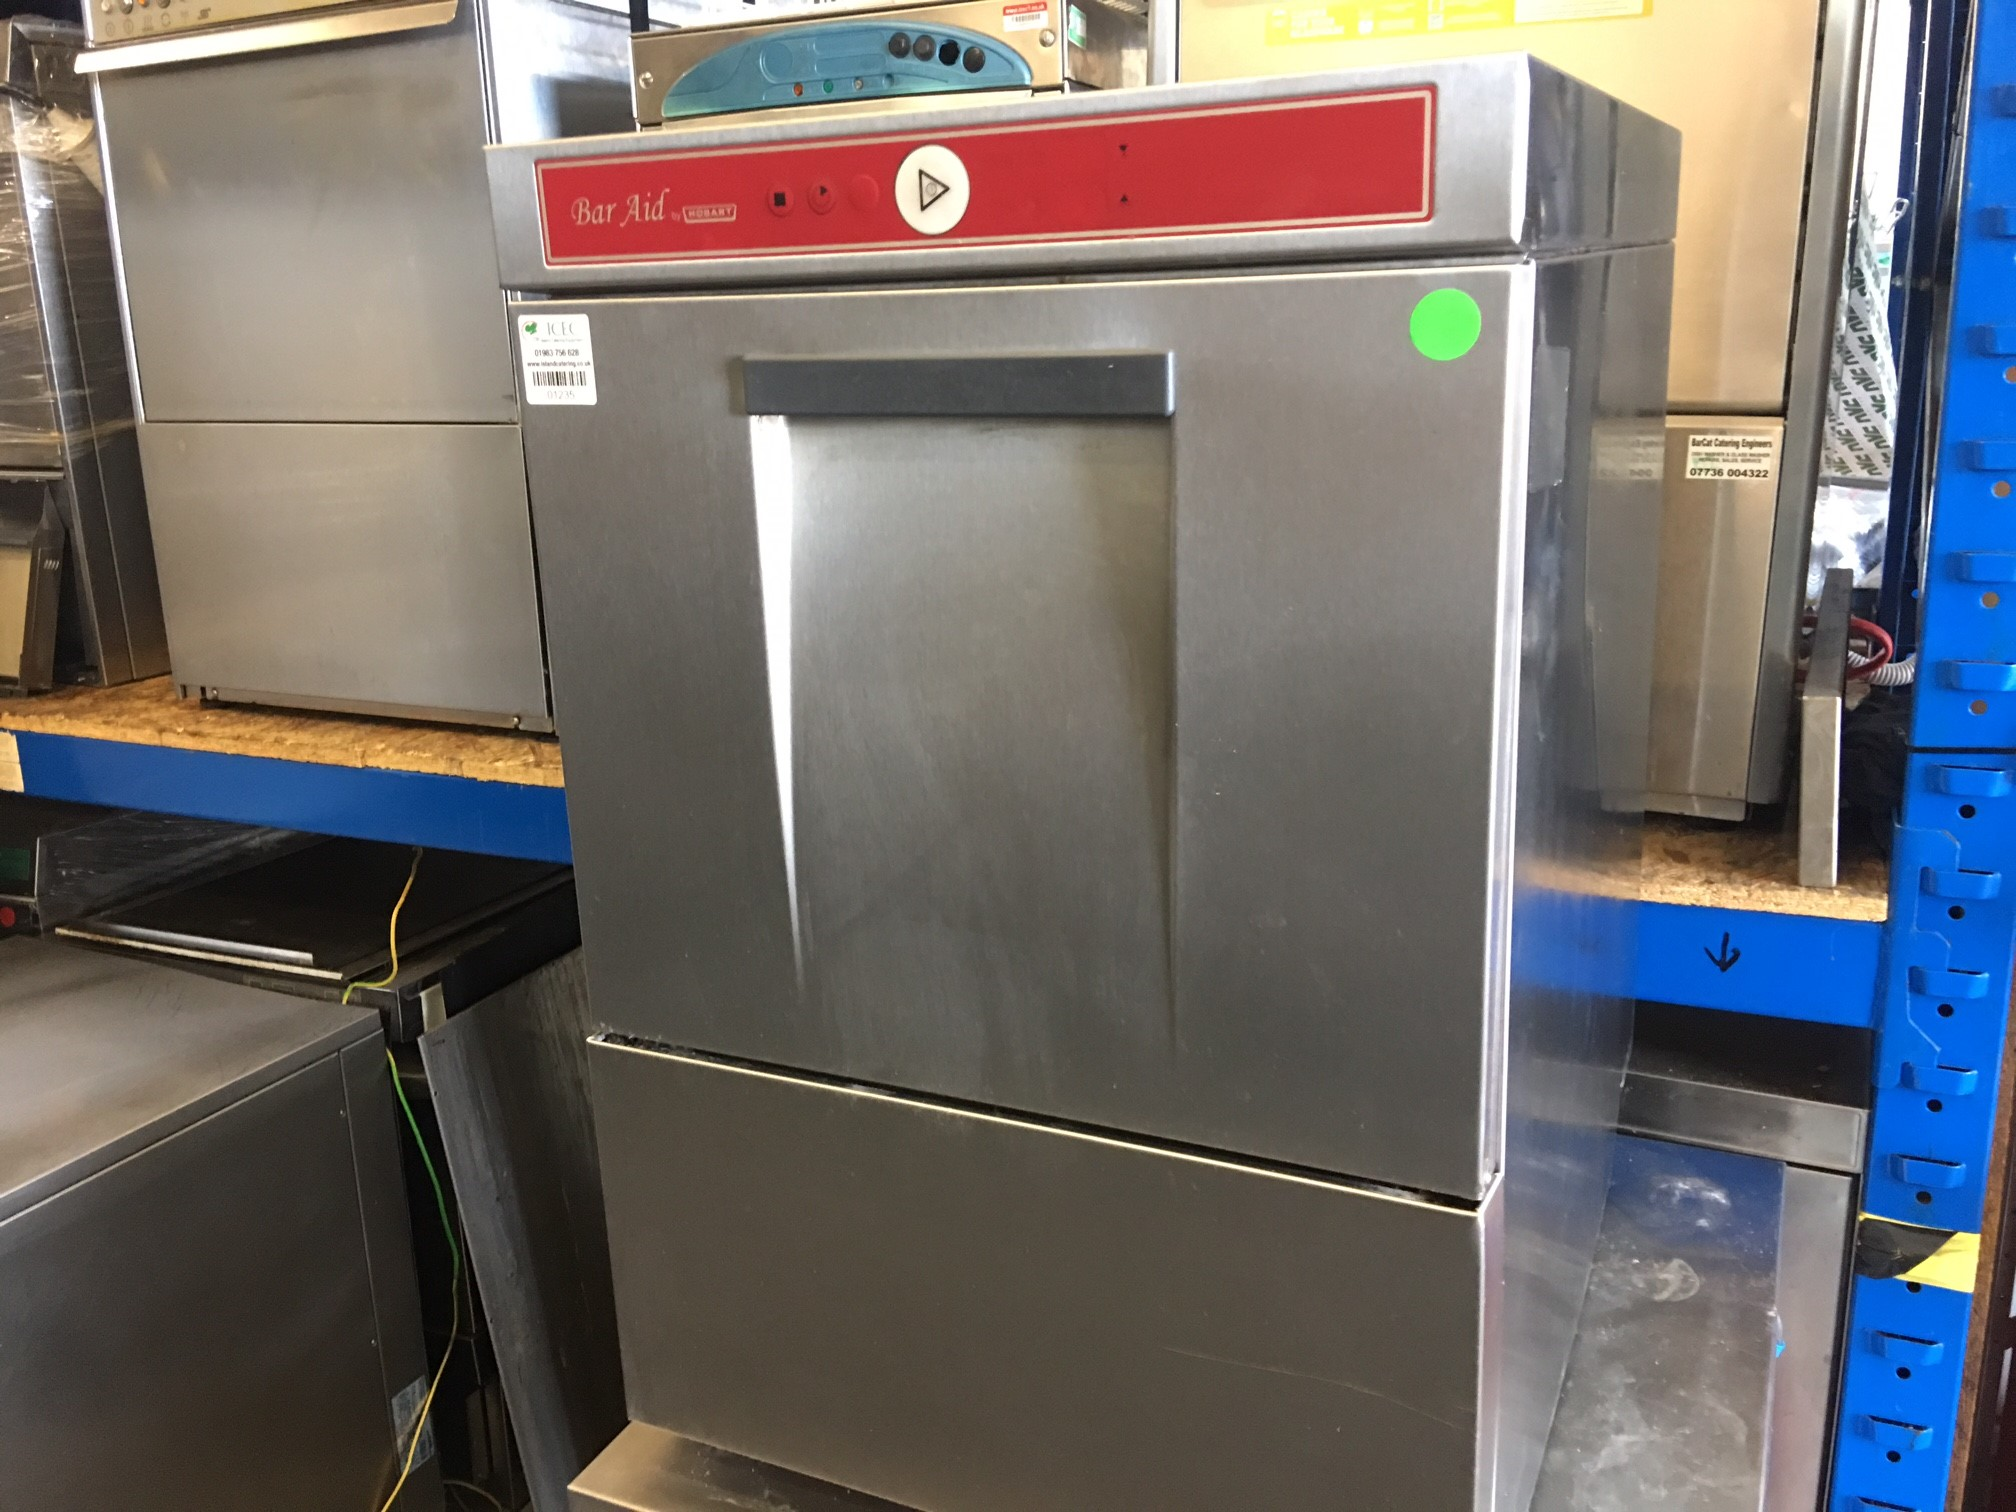 Bar aid Undercounter Small Glass washer Model – 400 10 n by Hobart